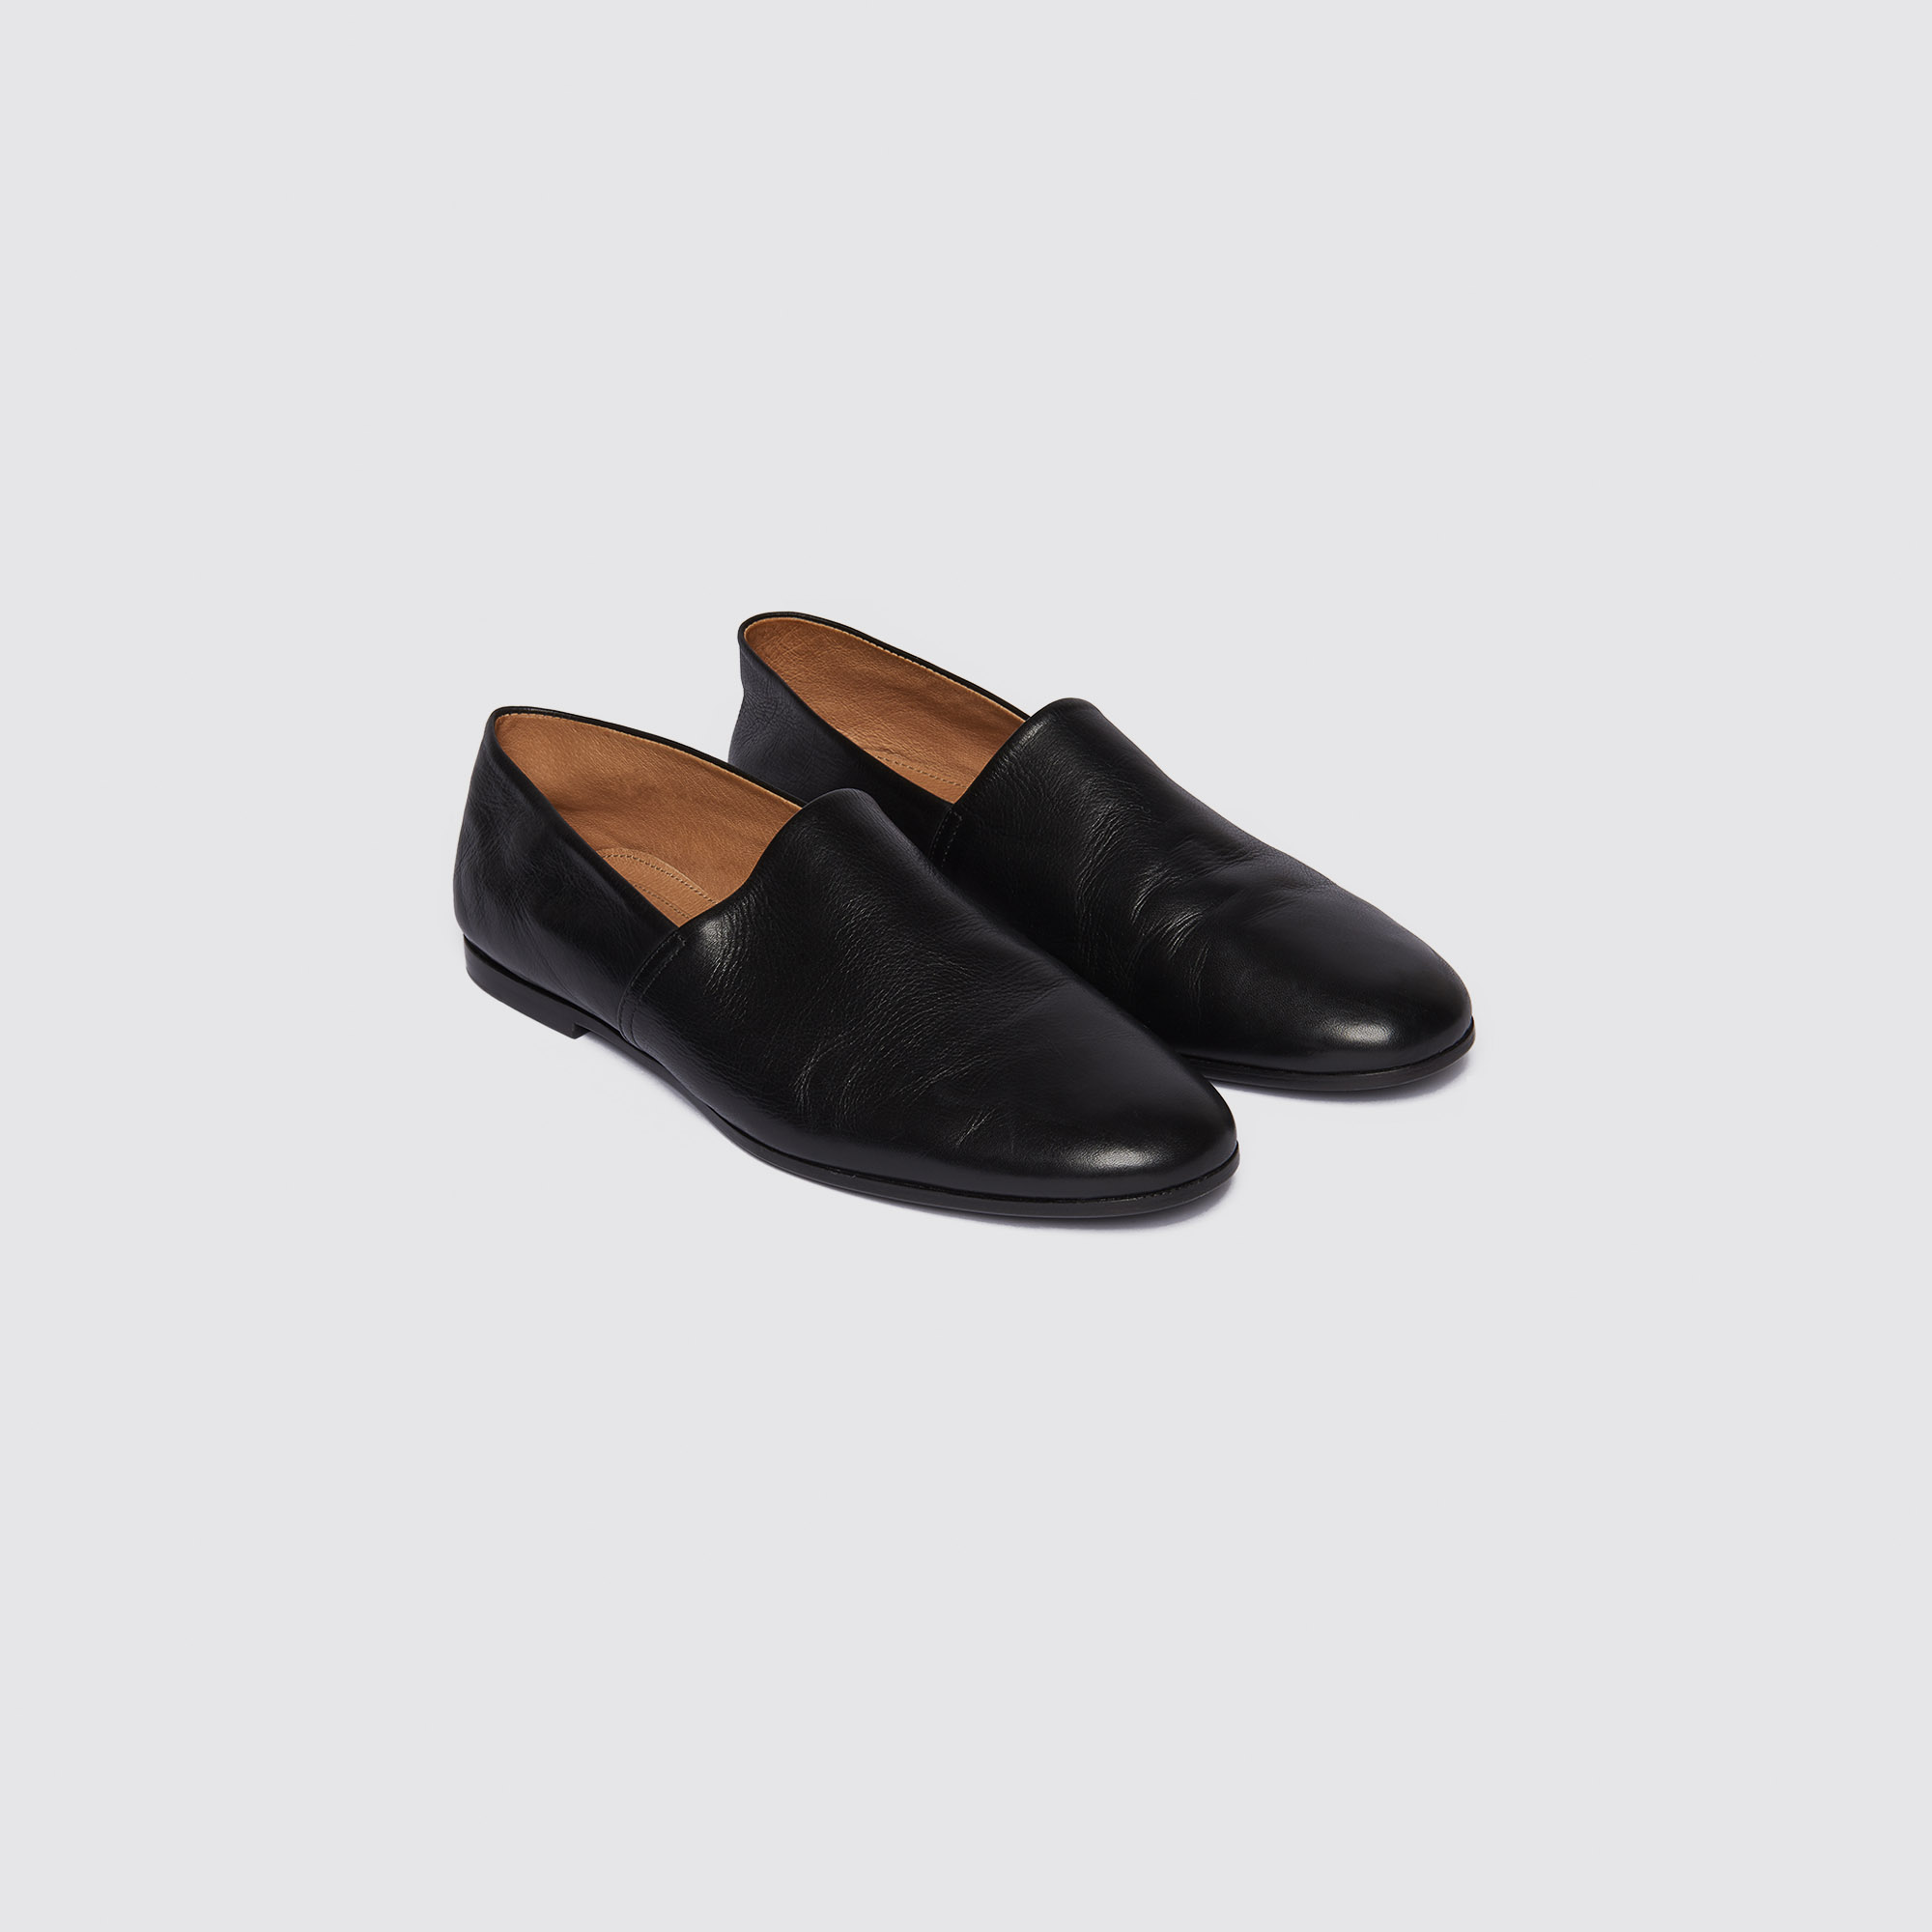 898b069e588 Smooth leather slippers